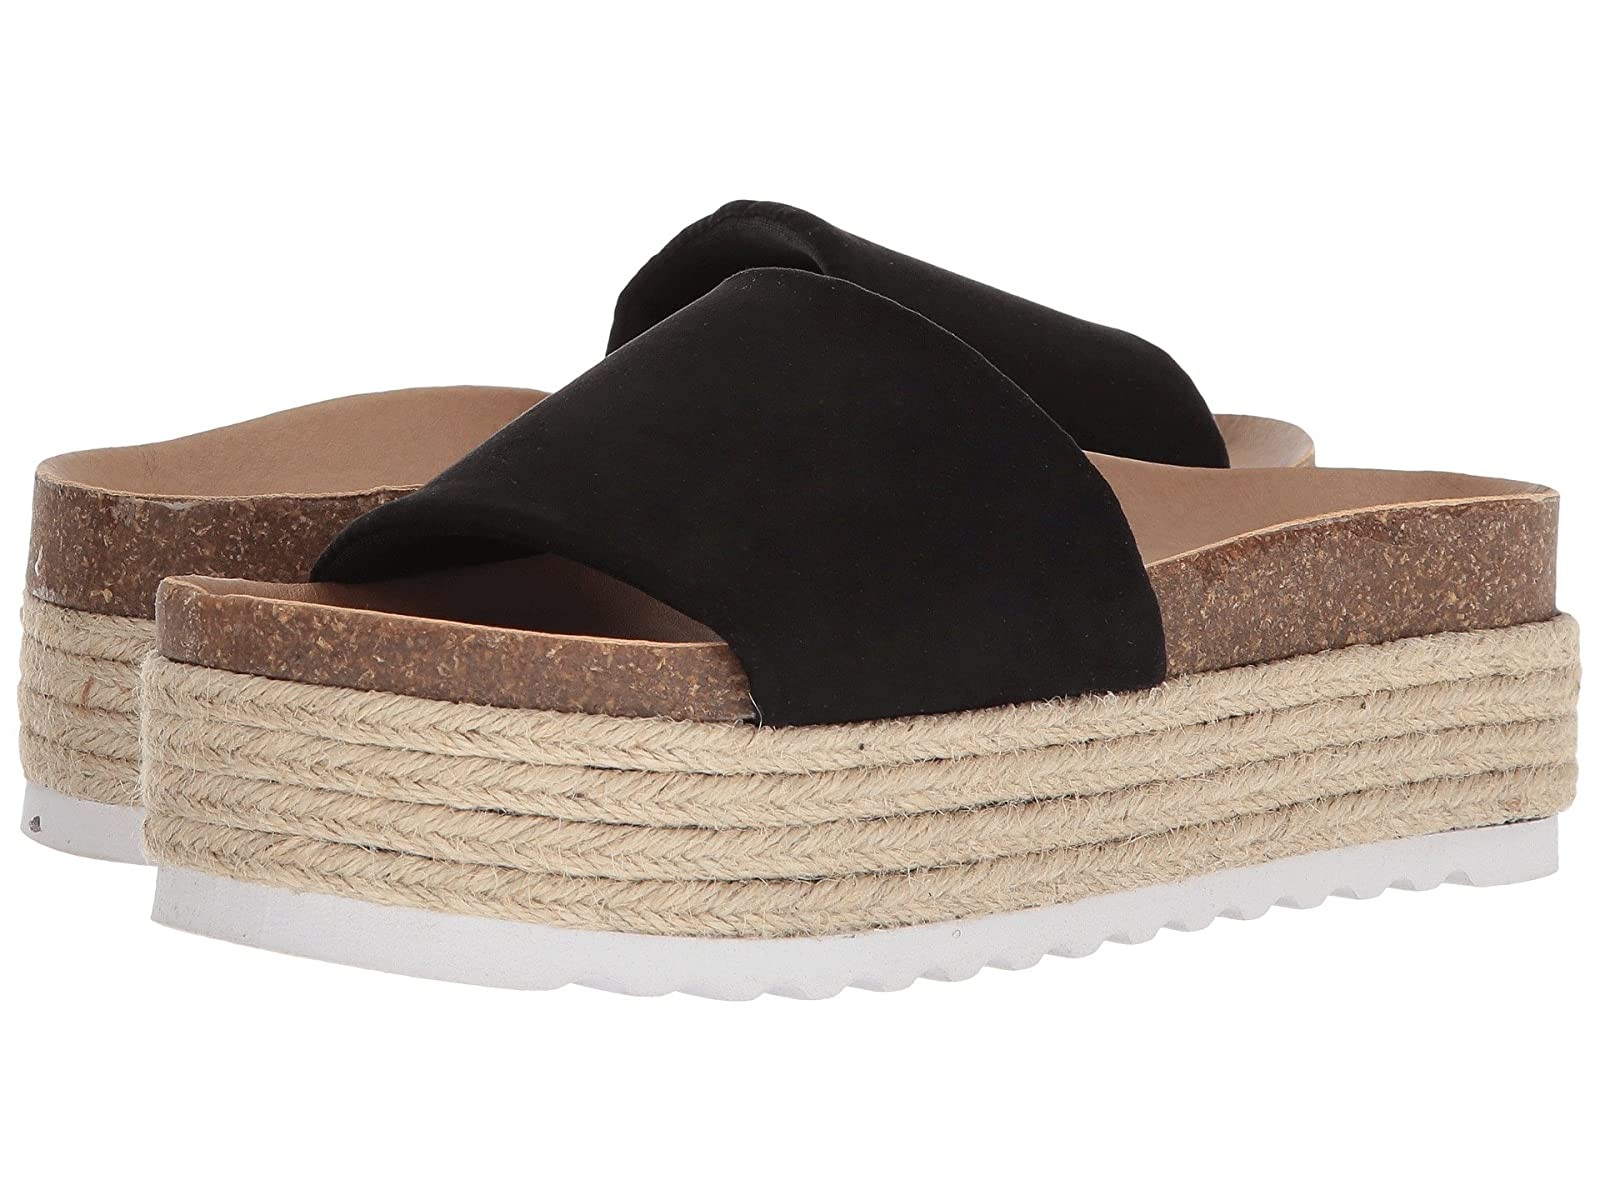 Dirty Laundry Pippa Platform SandalComfortable and distinctive shoes